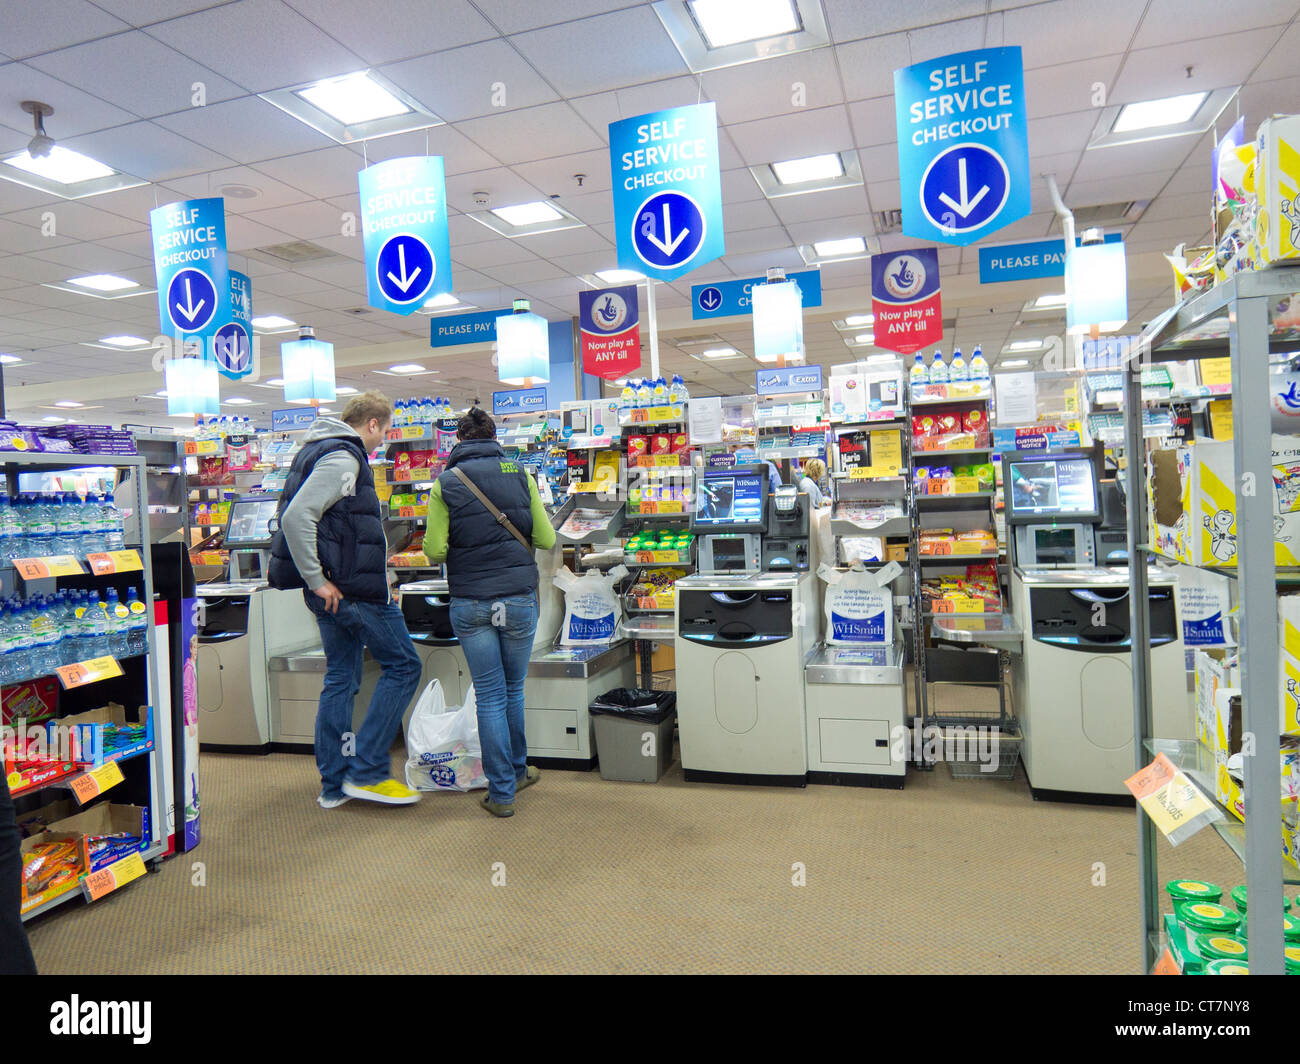 Self service checkouts in a WH Smith store - Stock Image